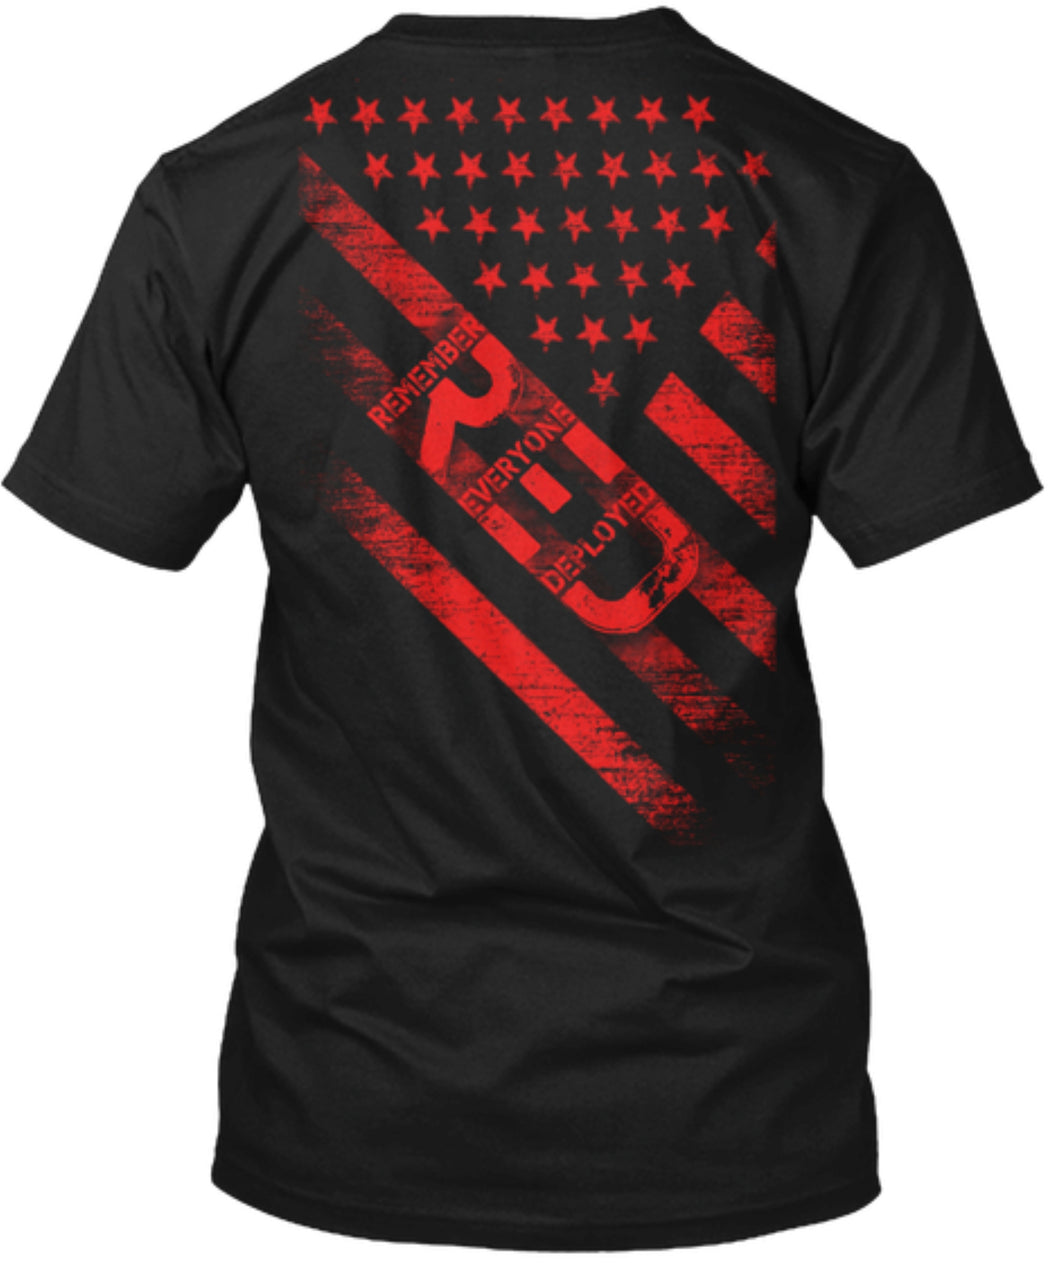 Remember Everyone Deployed (RED) Tshirt